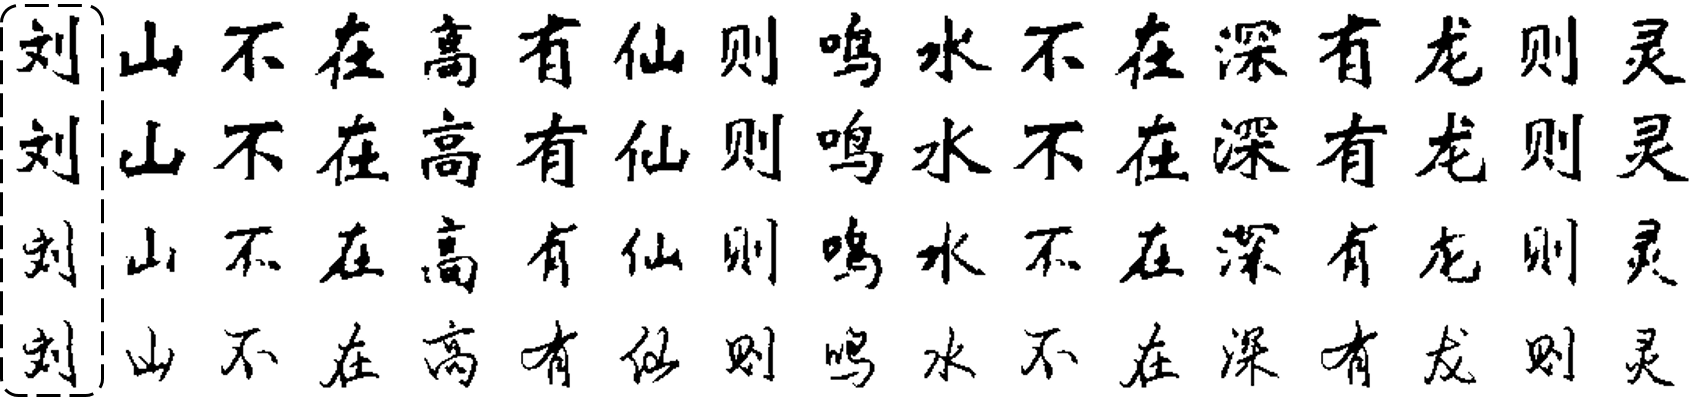 The generation results in the one-shot and few-shot setting. The Generated Chinese characters are in odd lines by our SA-VAE framework compared with the ground truth in even lines. Printing styles are in the top while handwritten styles are in the bottom. The characters(excerpts' author name) in the dotted frame are given as a new style provider.